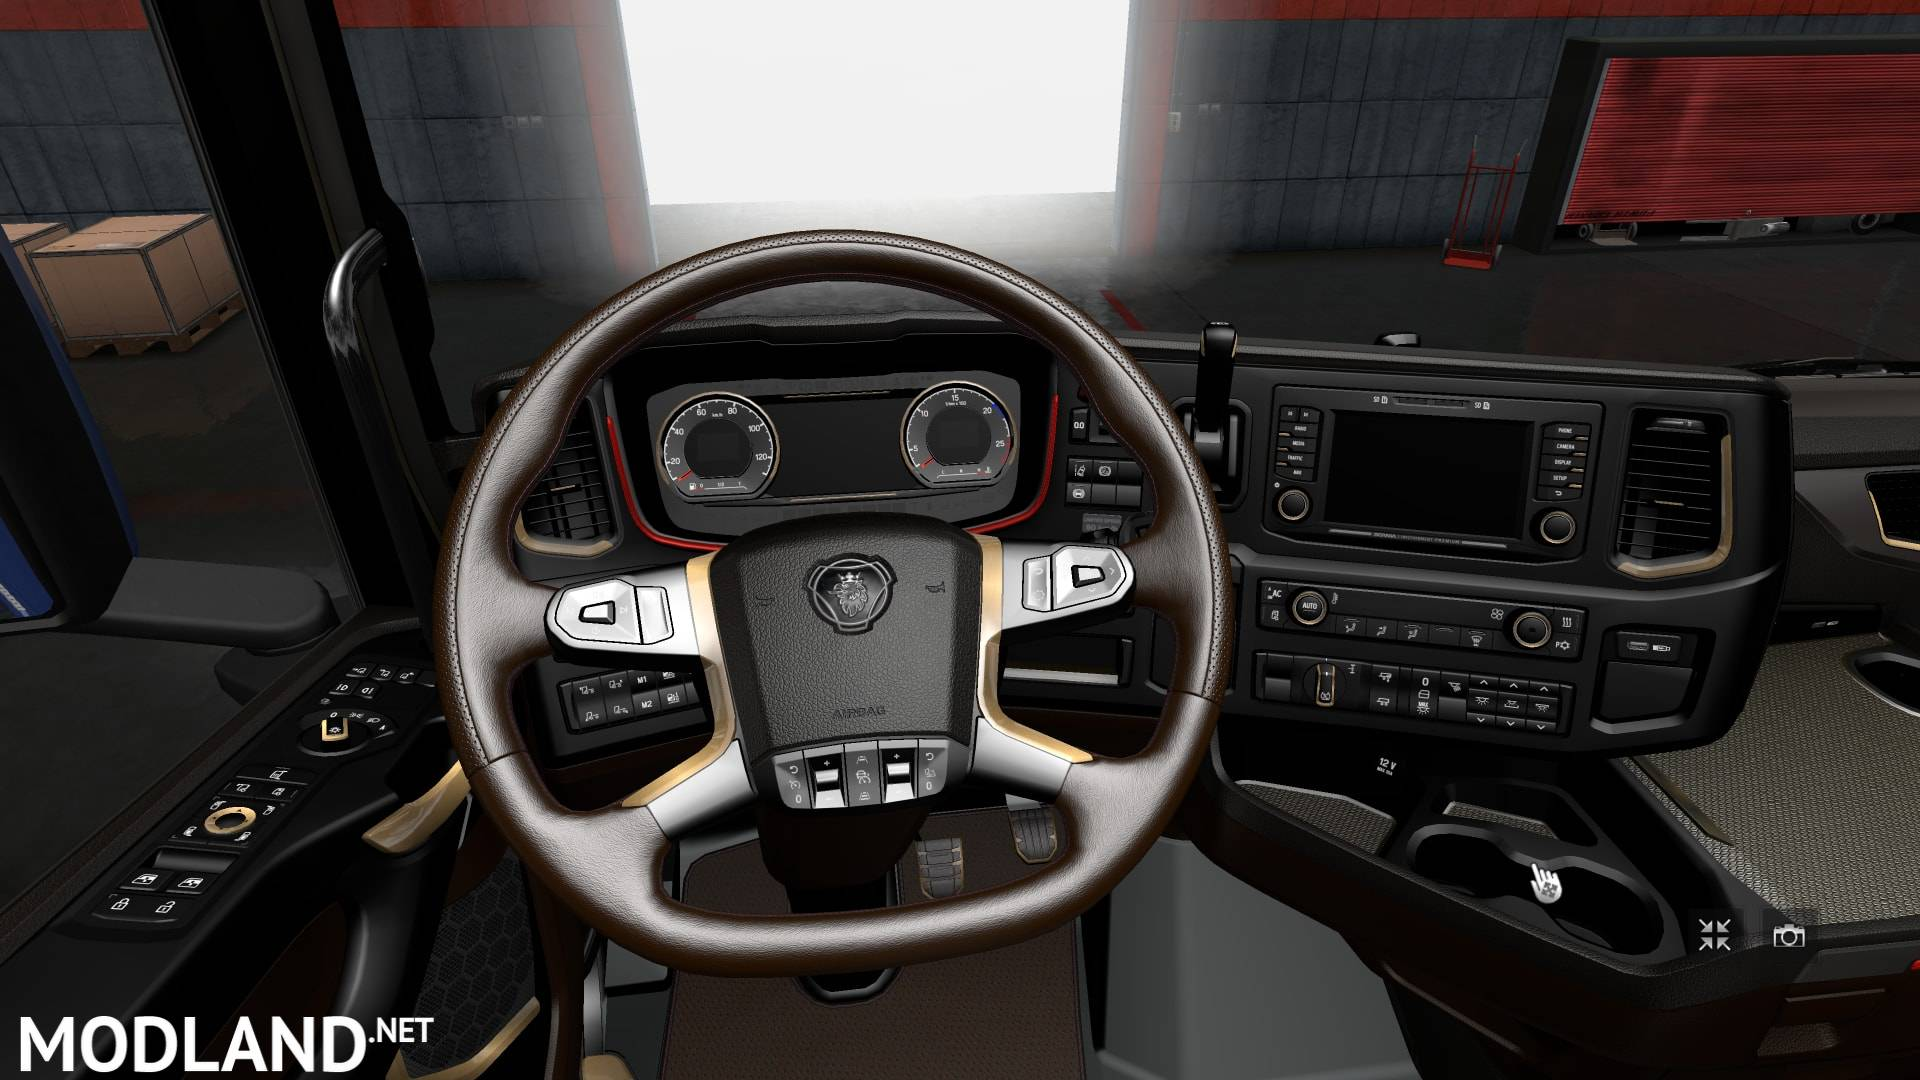 The interior for scania 2016 v 3 0 mod for ets 2 for Interior design simulator free